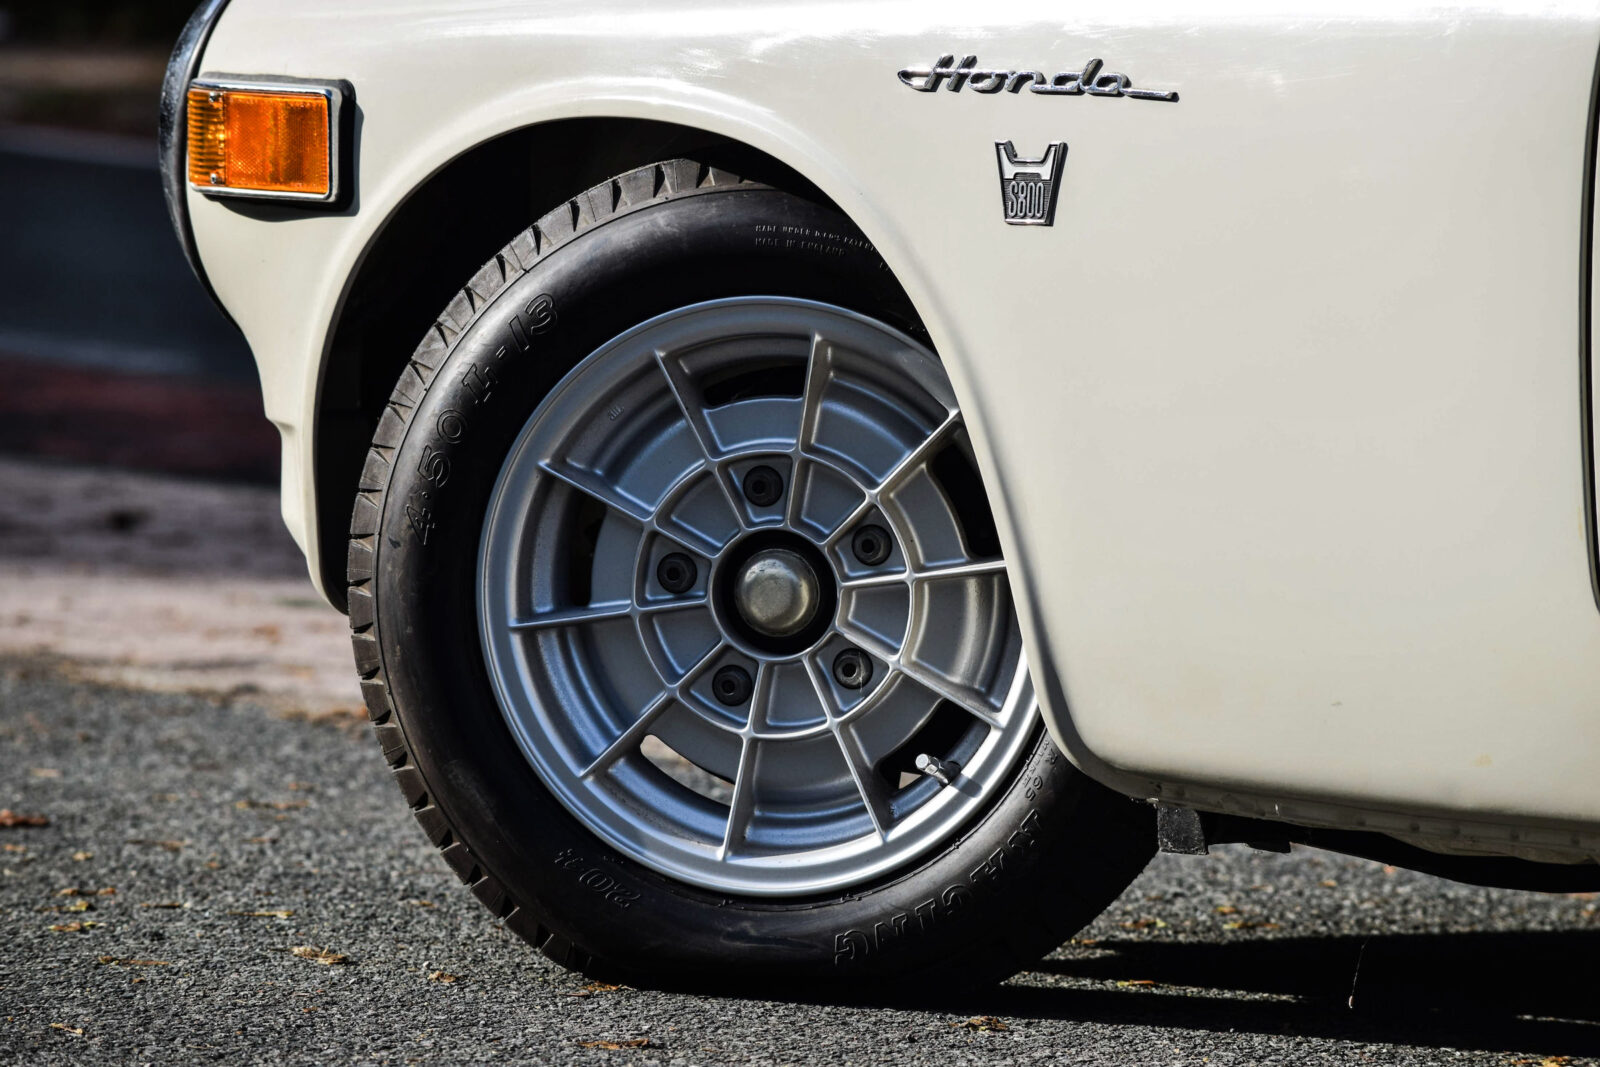 Honda S800 Racing Car Wheel 1600x1067 - 1 of 2 Ever Made - A Rare Original Honda S800 Racing